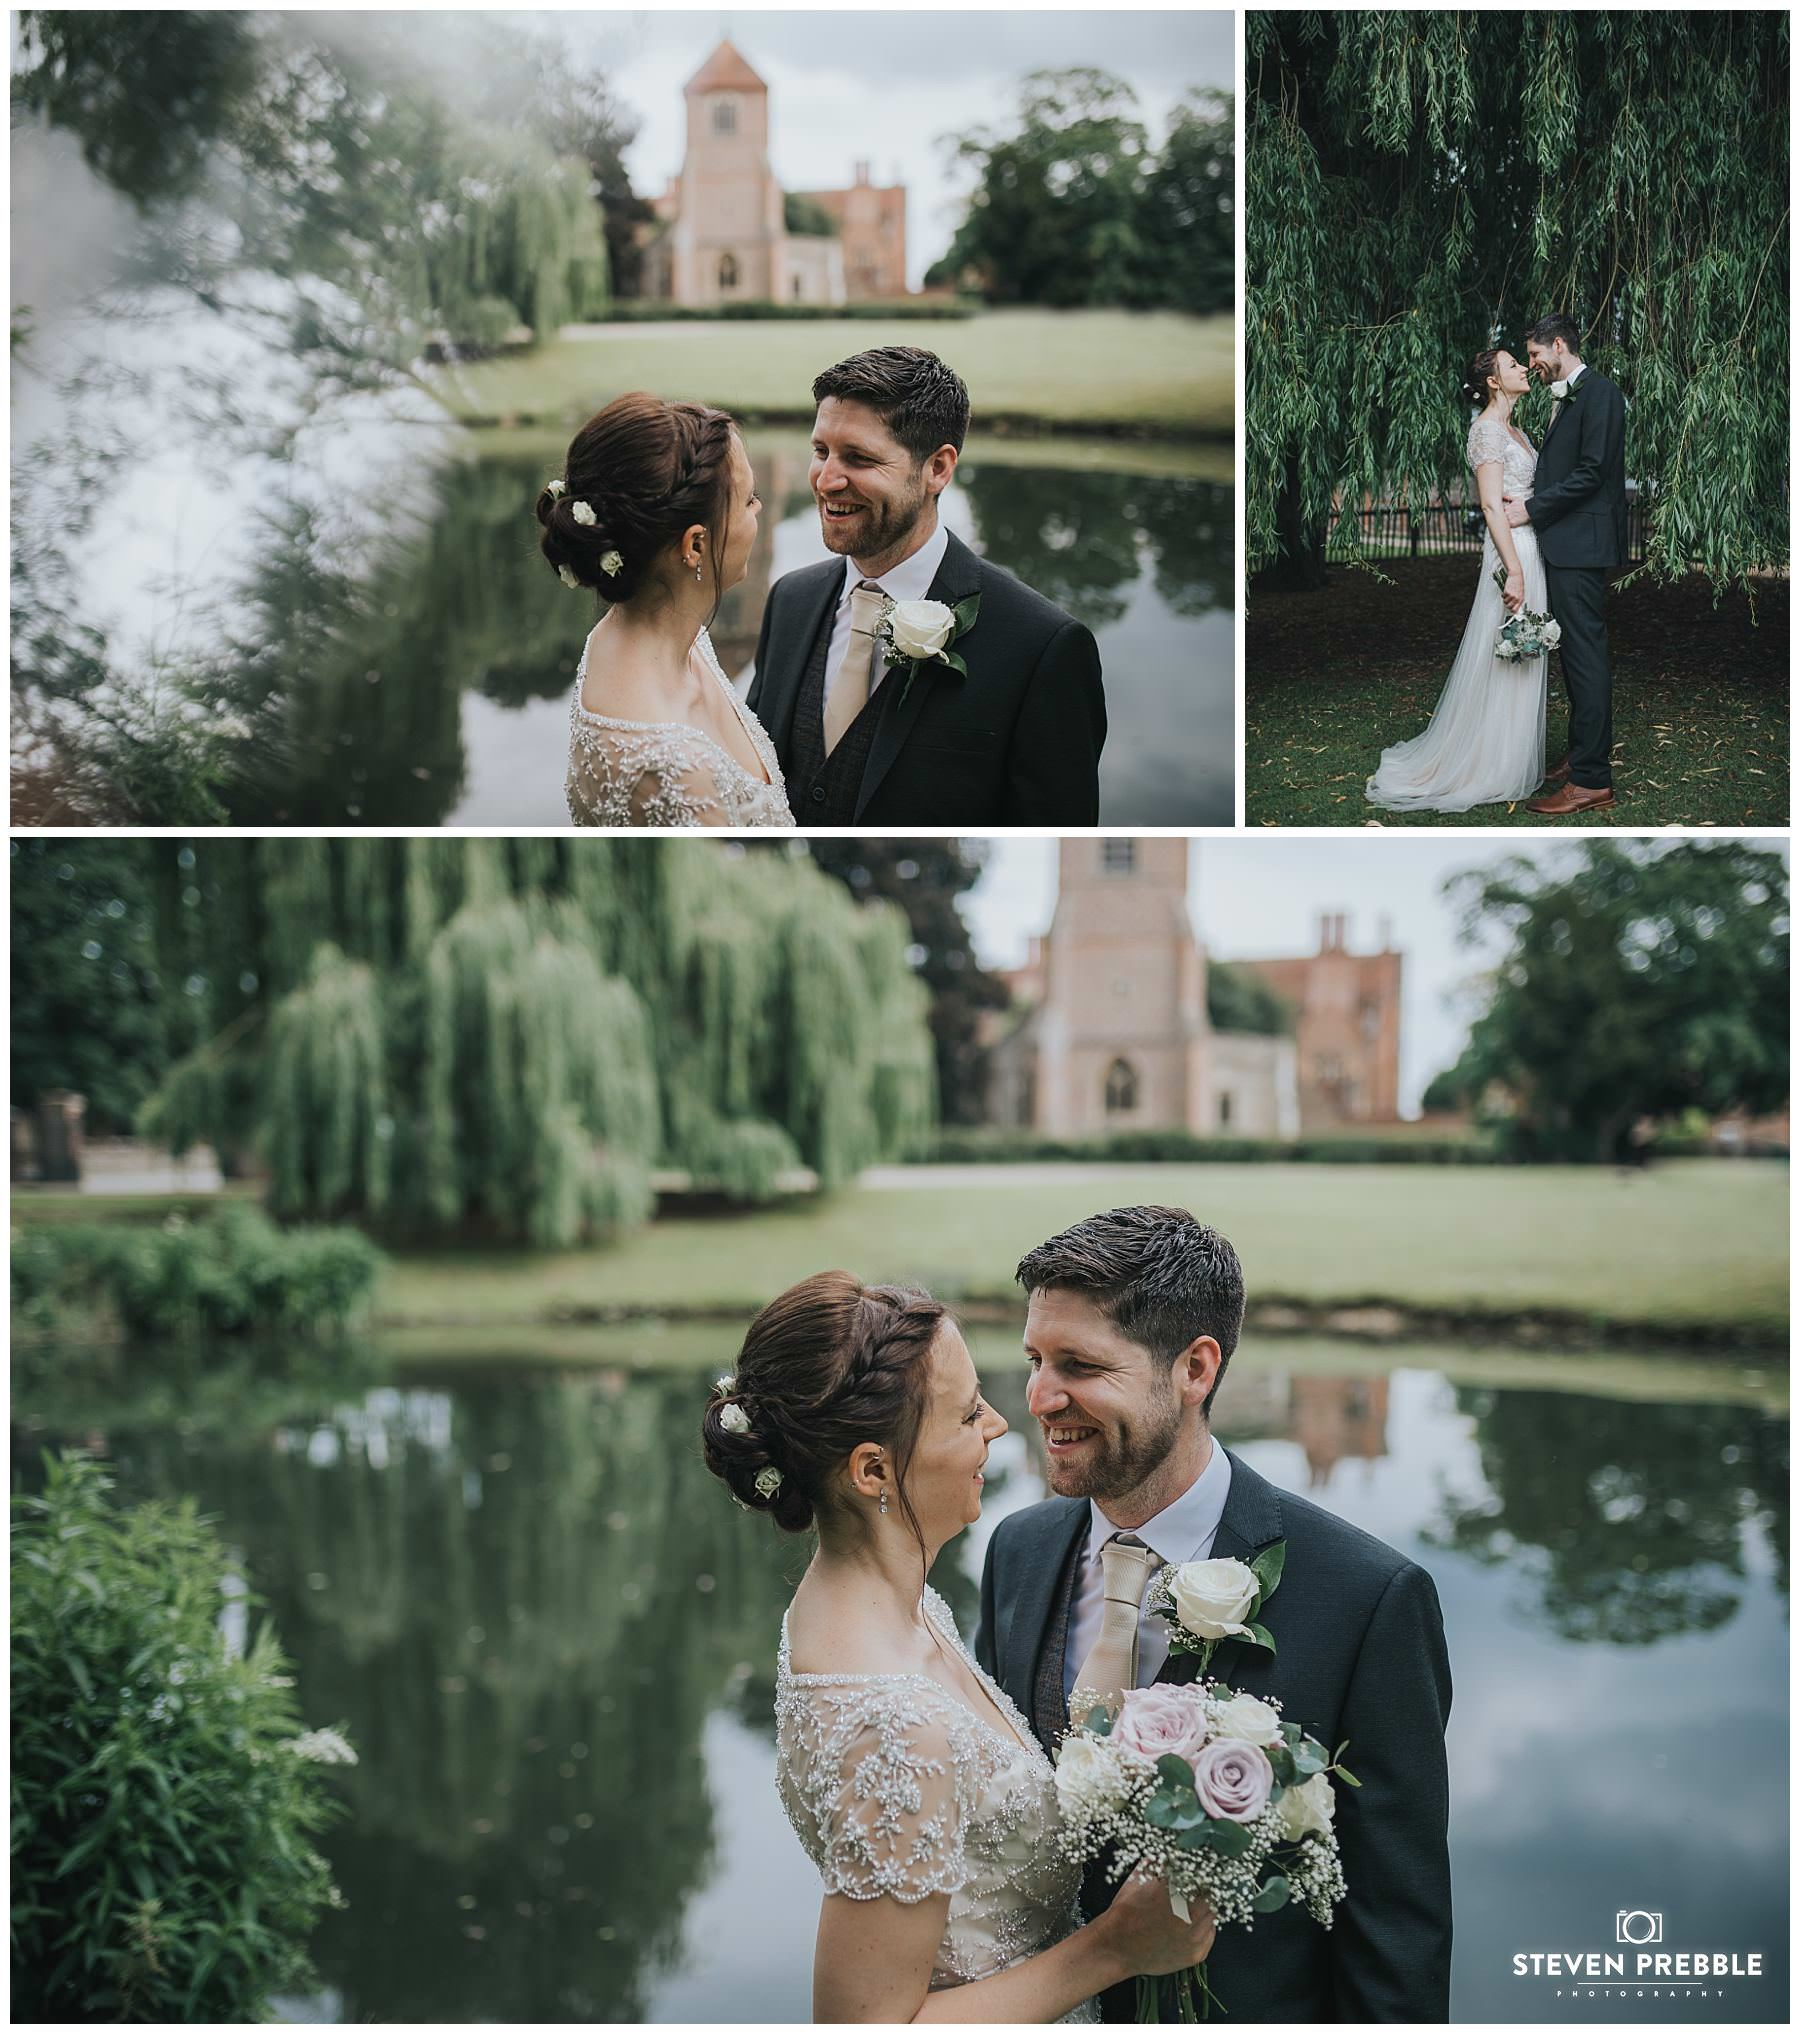 Wedding couple pose at Mapledurham estate reading